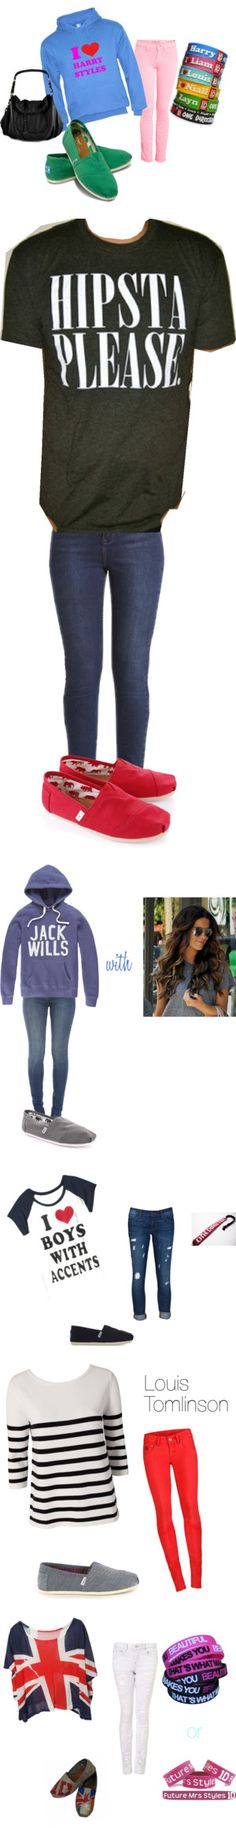 """""""One Direction Clothing"""" by cieara-1 on Polyvore. I would wear the Louis Tomlinson!"""